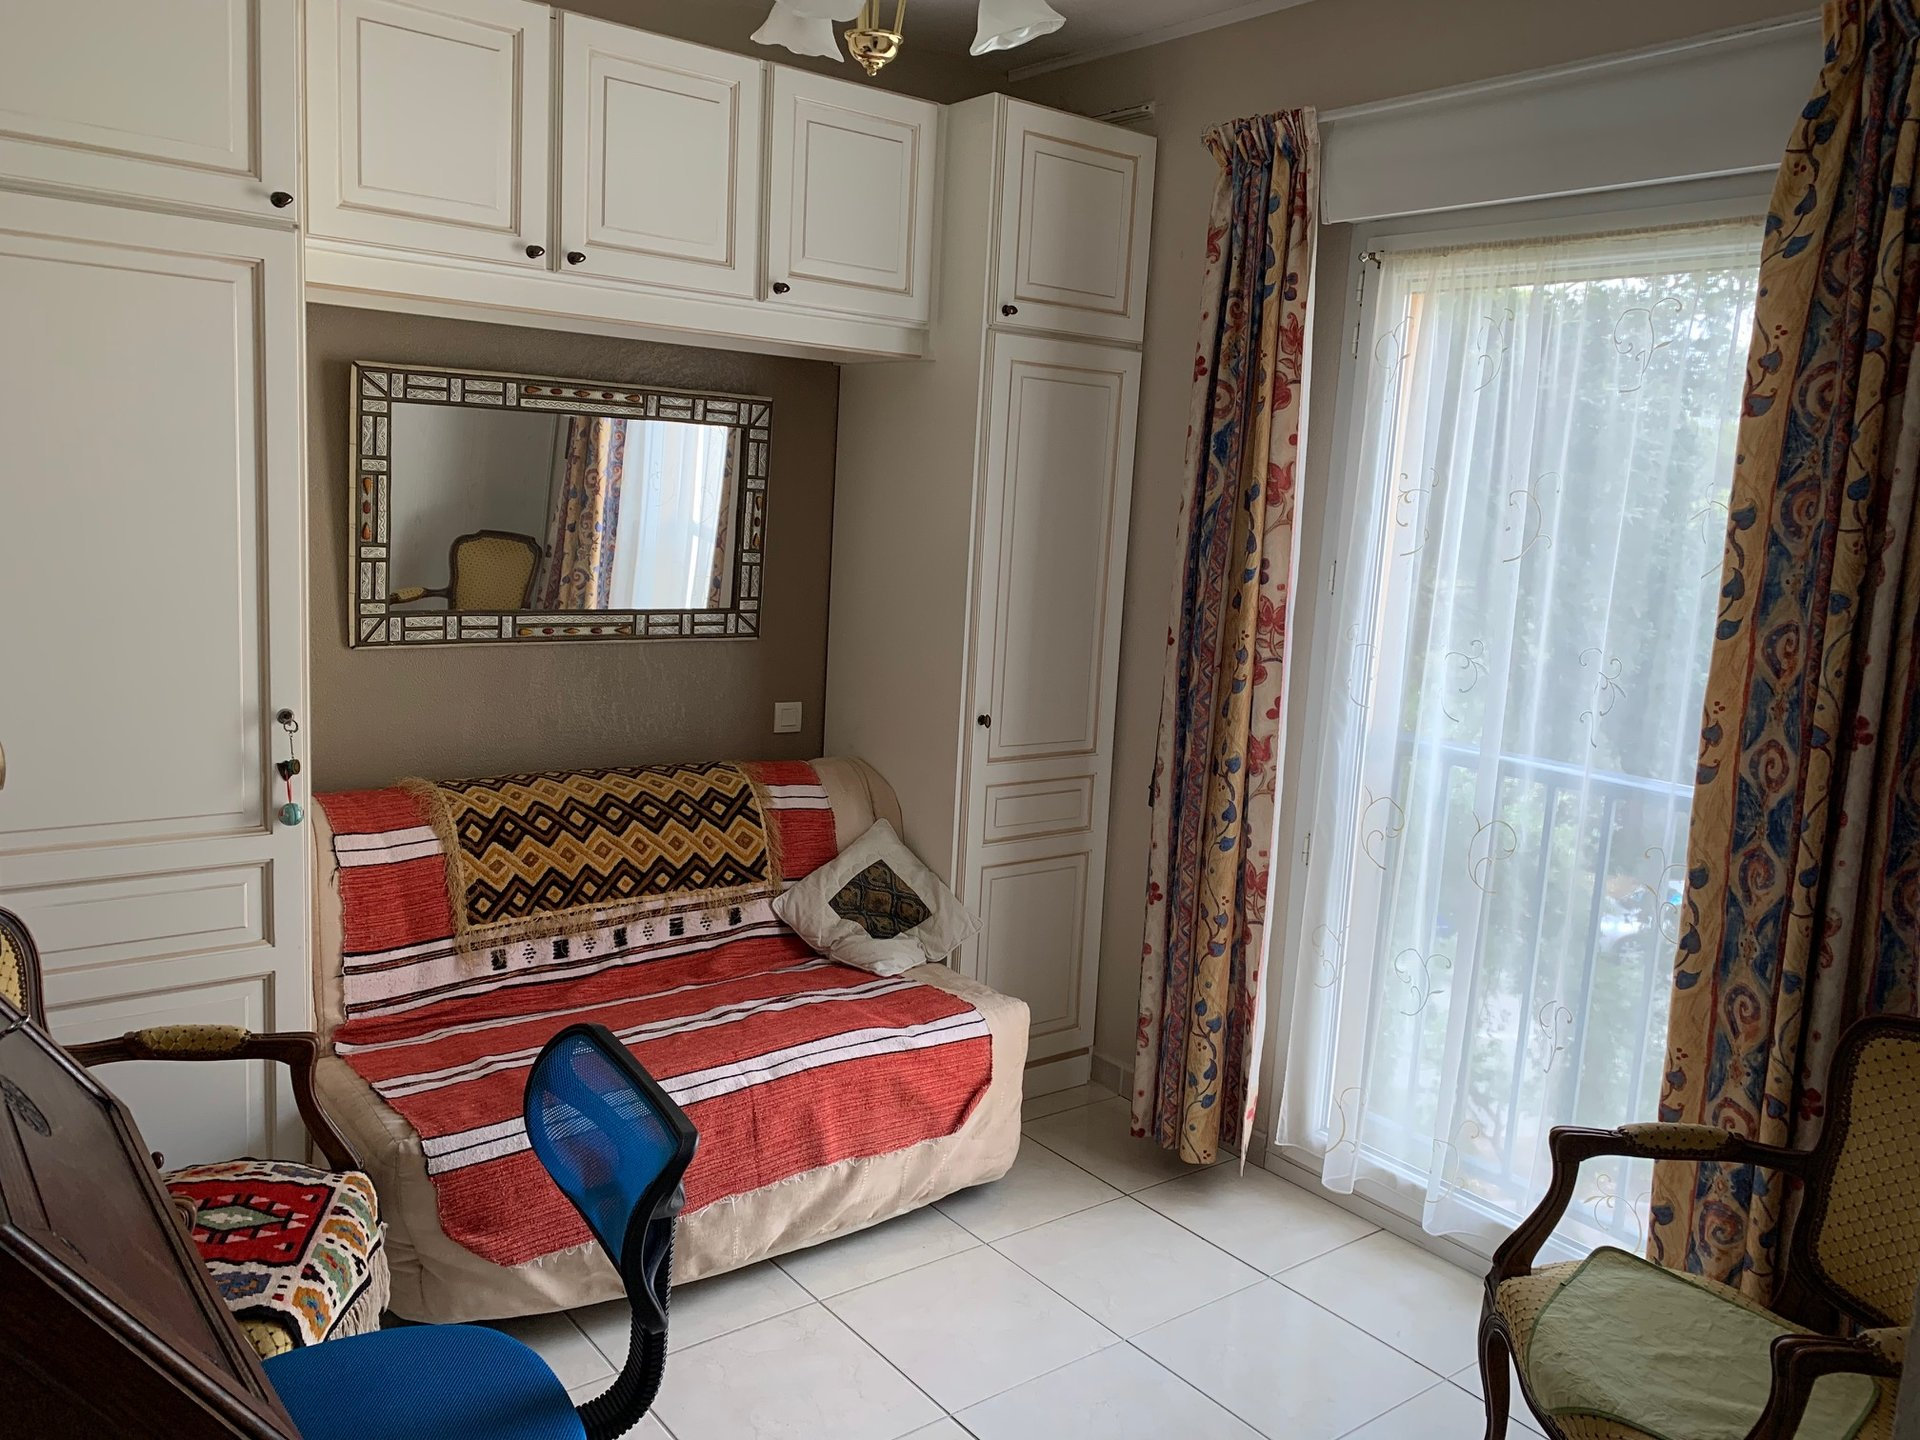 3-room apartment with sea view in Saint Aygulf